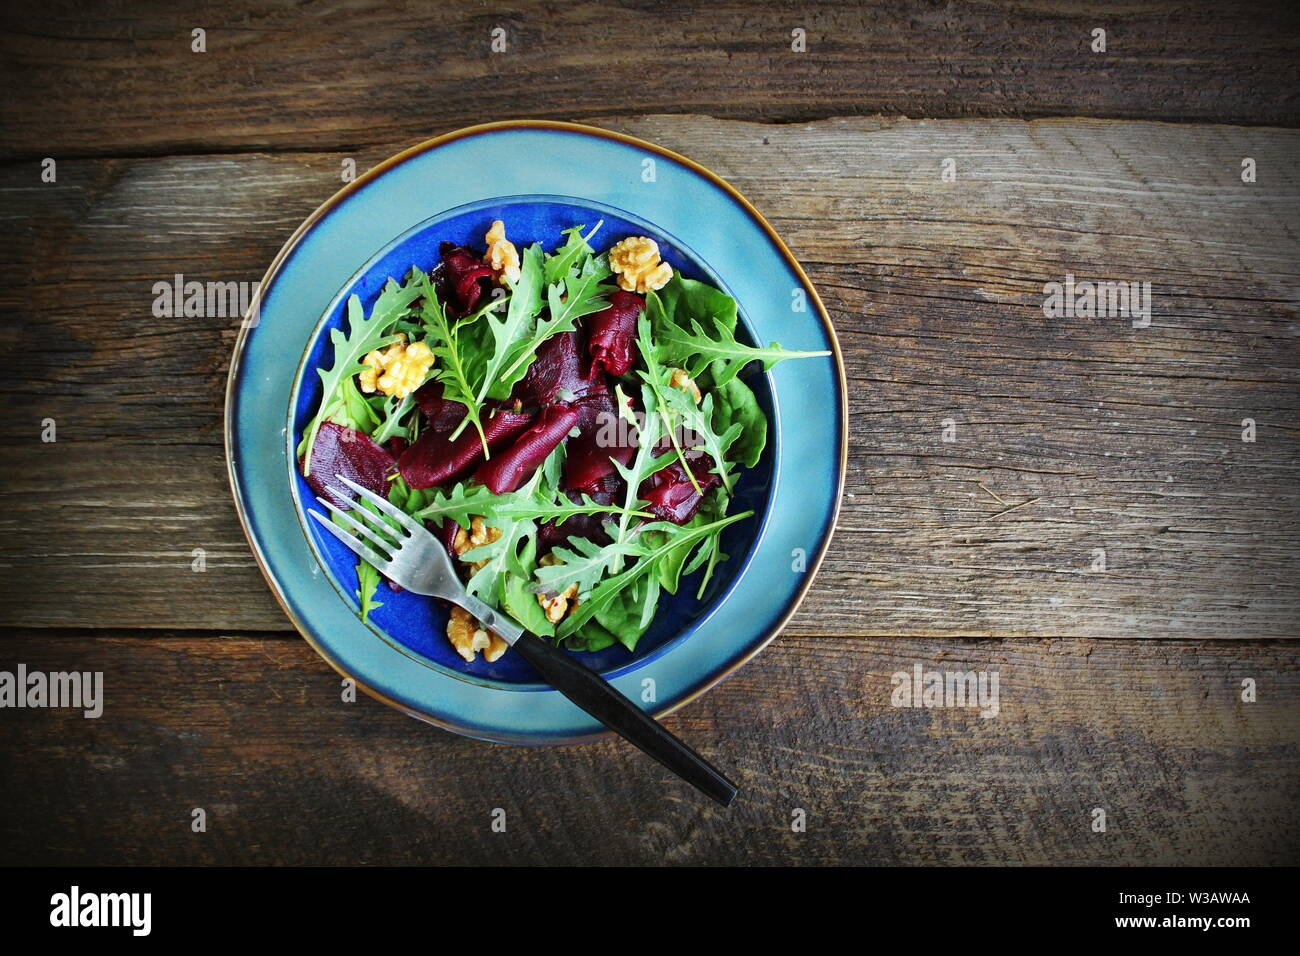 Healthy Beet Salad with fresh sweet baby spinach, arugula, nuts on wooden background . Top view Stock Photo